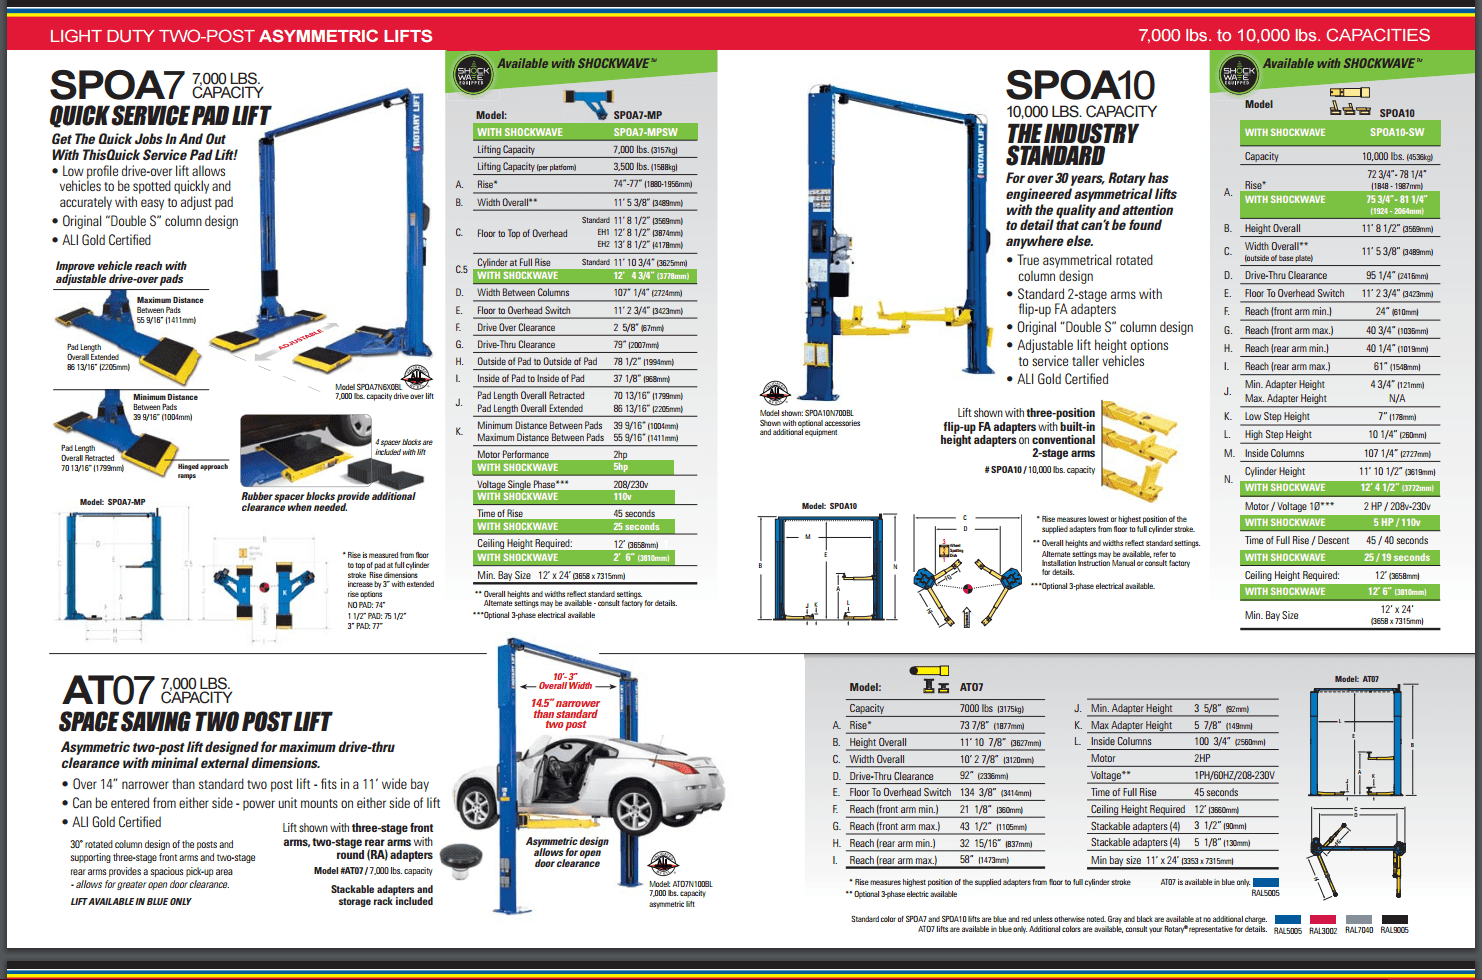 Rotary Spoa10 Asymmetrical Two Post Lift Fast Equipment